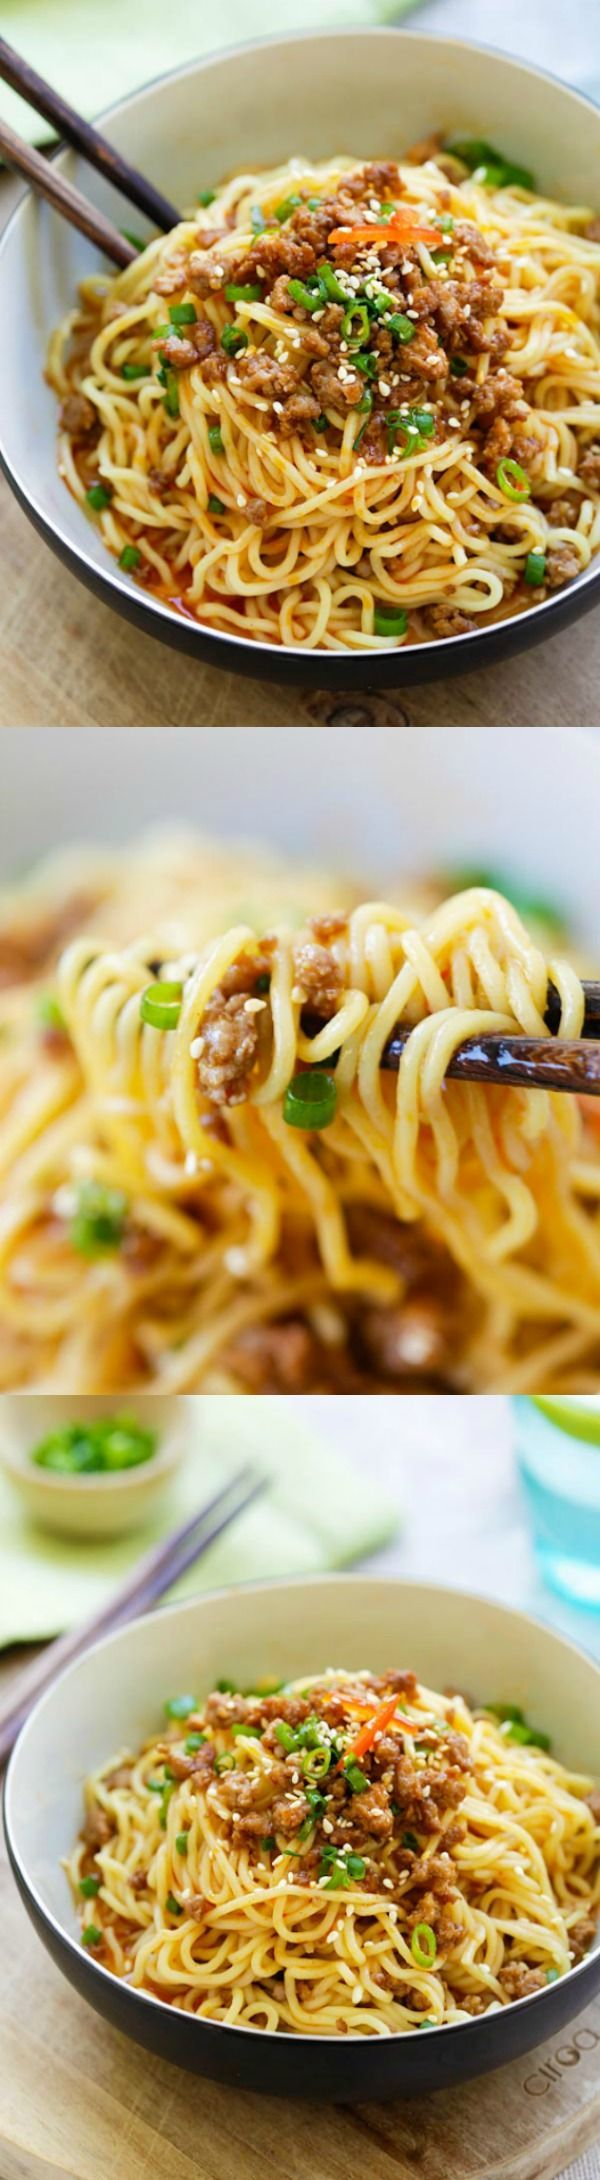 Dan Dan Noodles – savory and spicy Sichuan noodles with ground meat. Dan Dan Mian (Noodles) is delicious. Learn how to make it with this easy recipe | rasamalaysia.com